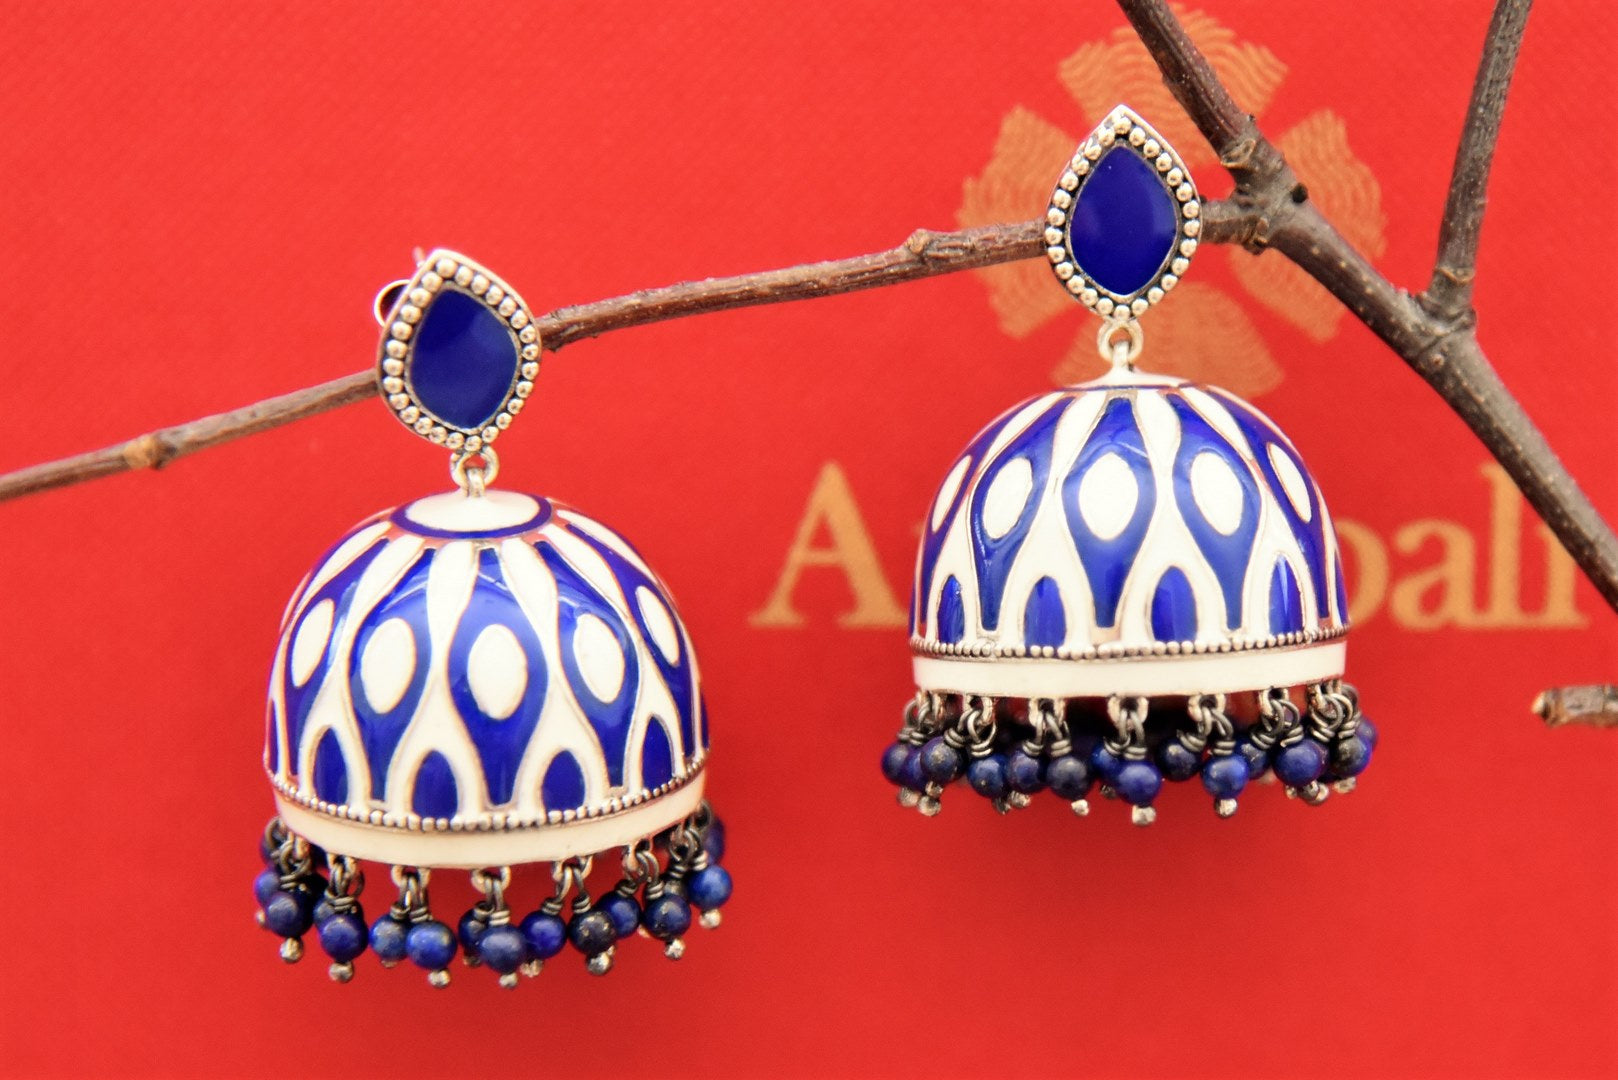 Buy blue and white enamel big silver jhumki online in USA with hanging blue beads. Find an exquisite collection of handcrafted Indian jewelry in USA at Pure Elegance Indian fashion store. Complete your festive look with beautiful silver gold plated necklaces, silver earrings, silver jewelry from our online store.-front